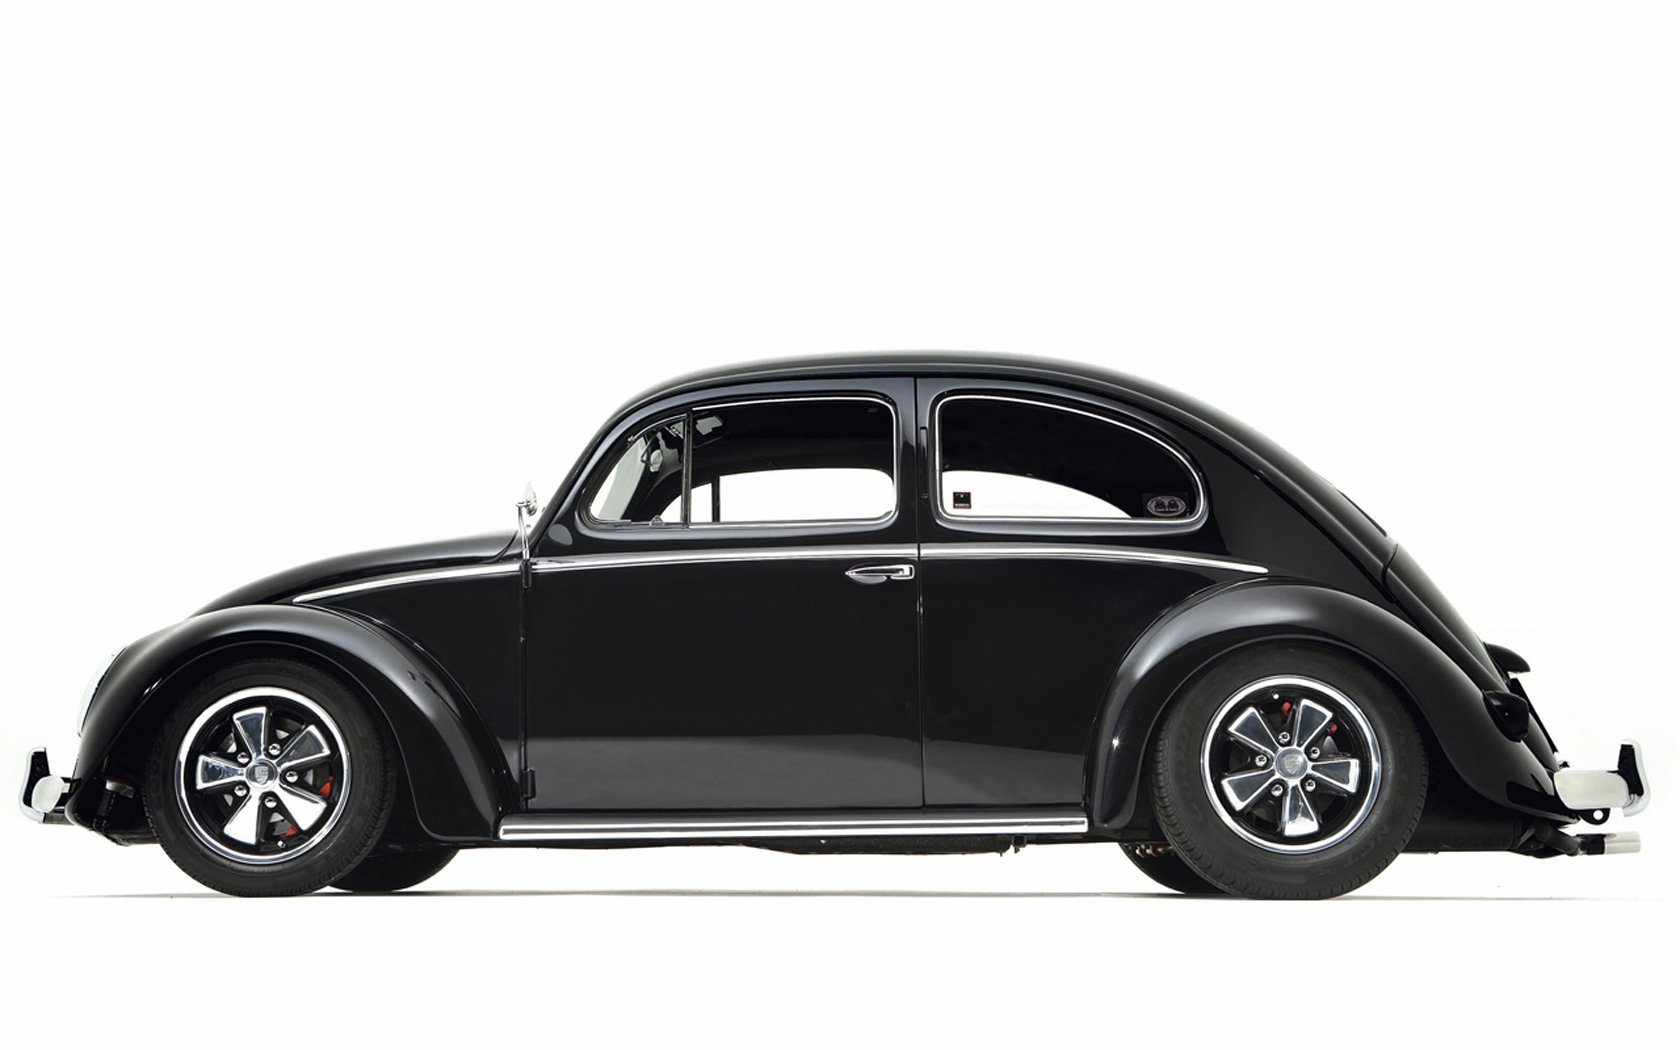 Cars monochrome vehicles volkswagen beetle side view wallpaper 1680x1050 330684 wallpaperup - Car side view wallpaper ...